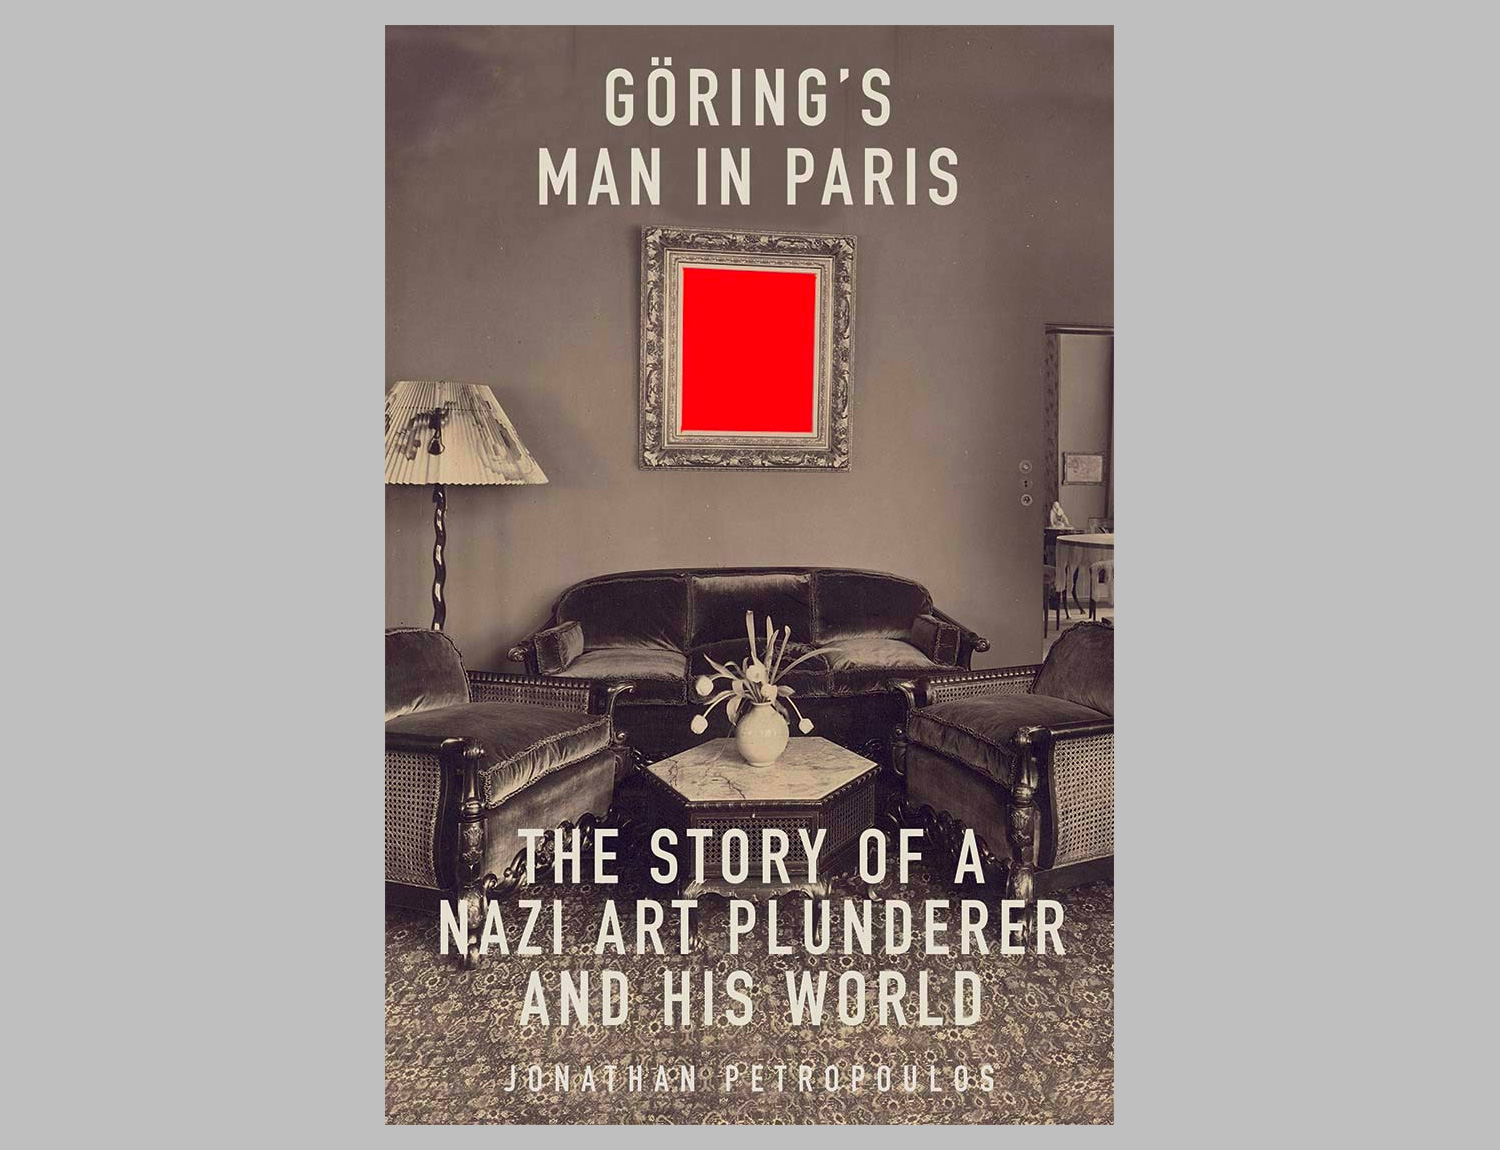 Goering's Man in Paris: The Story of a Nazi Art Plunderer and His World at werd.com